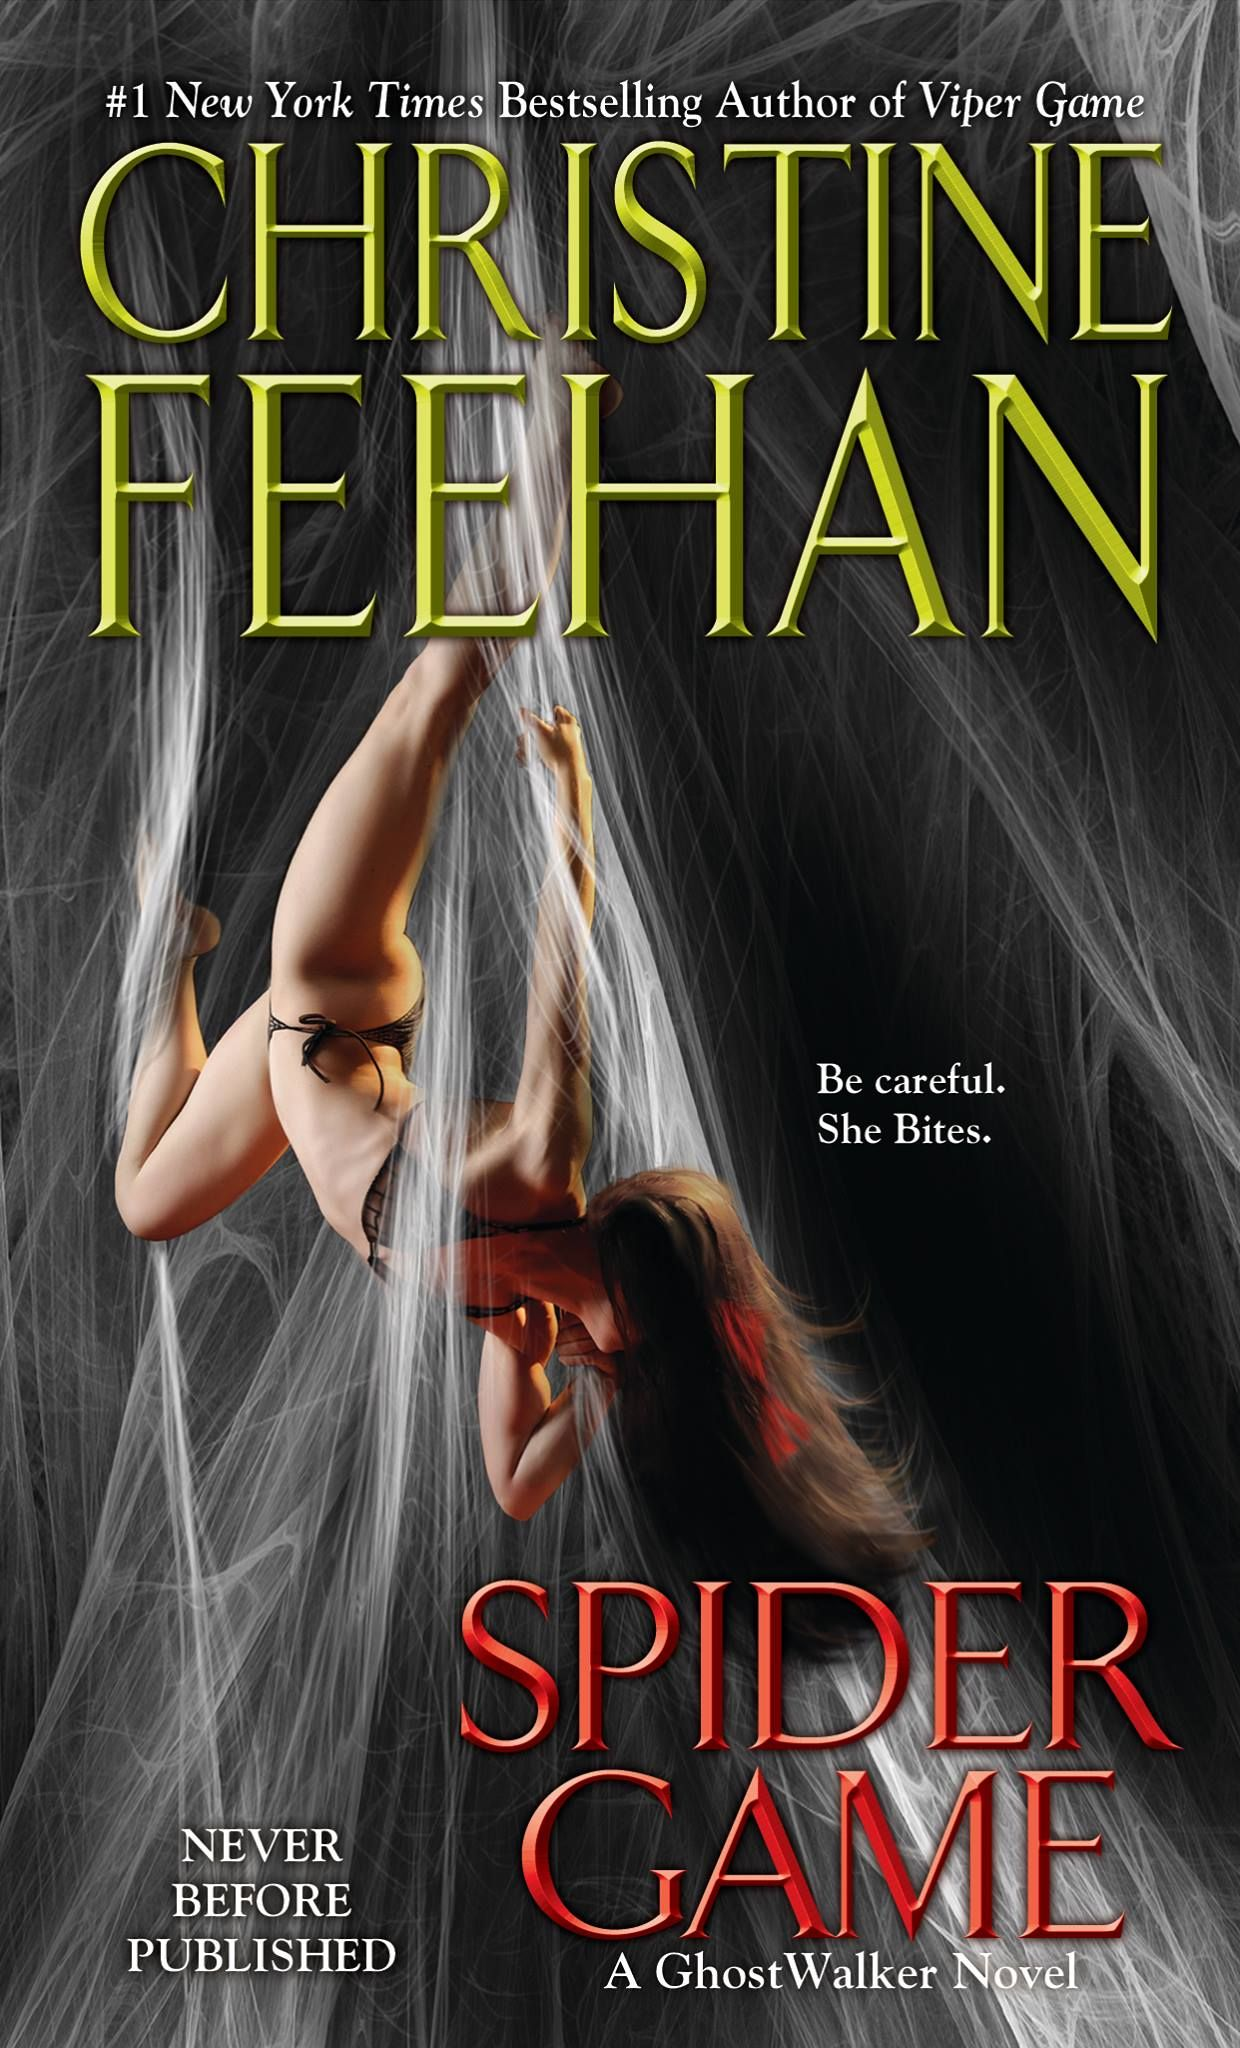 Spider Game by Christine Feehan Release date January 26